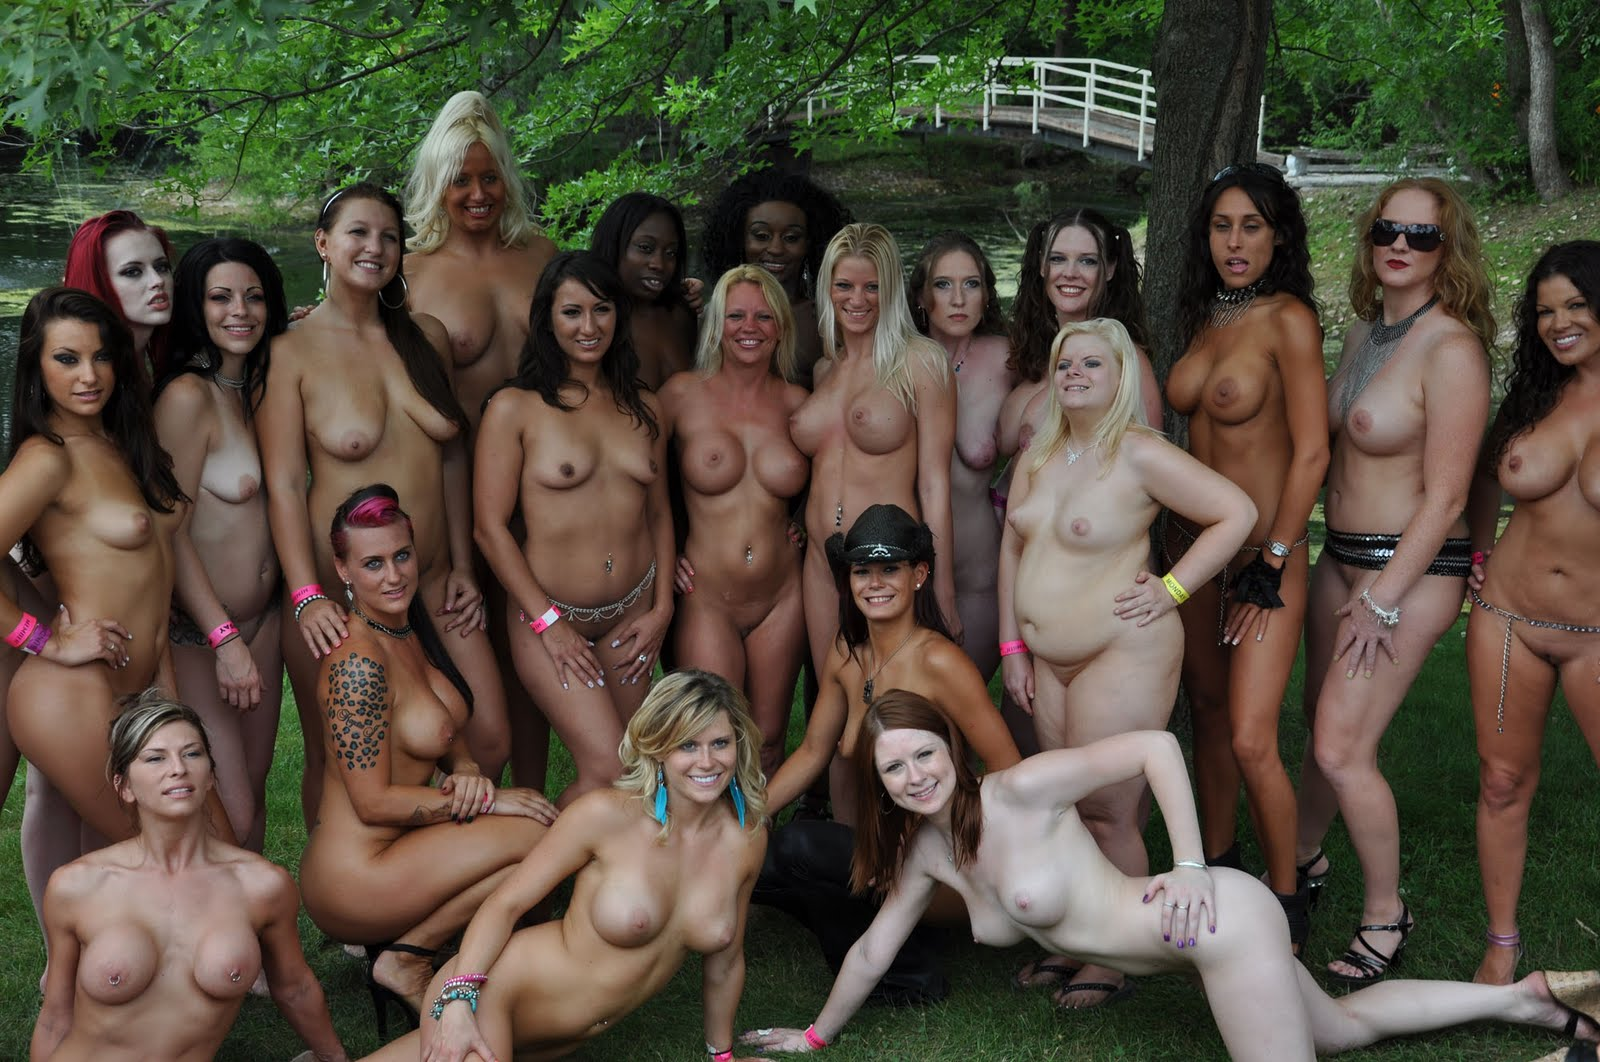 Think, Group mature nude grannies matchless